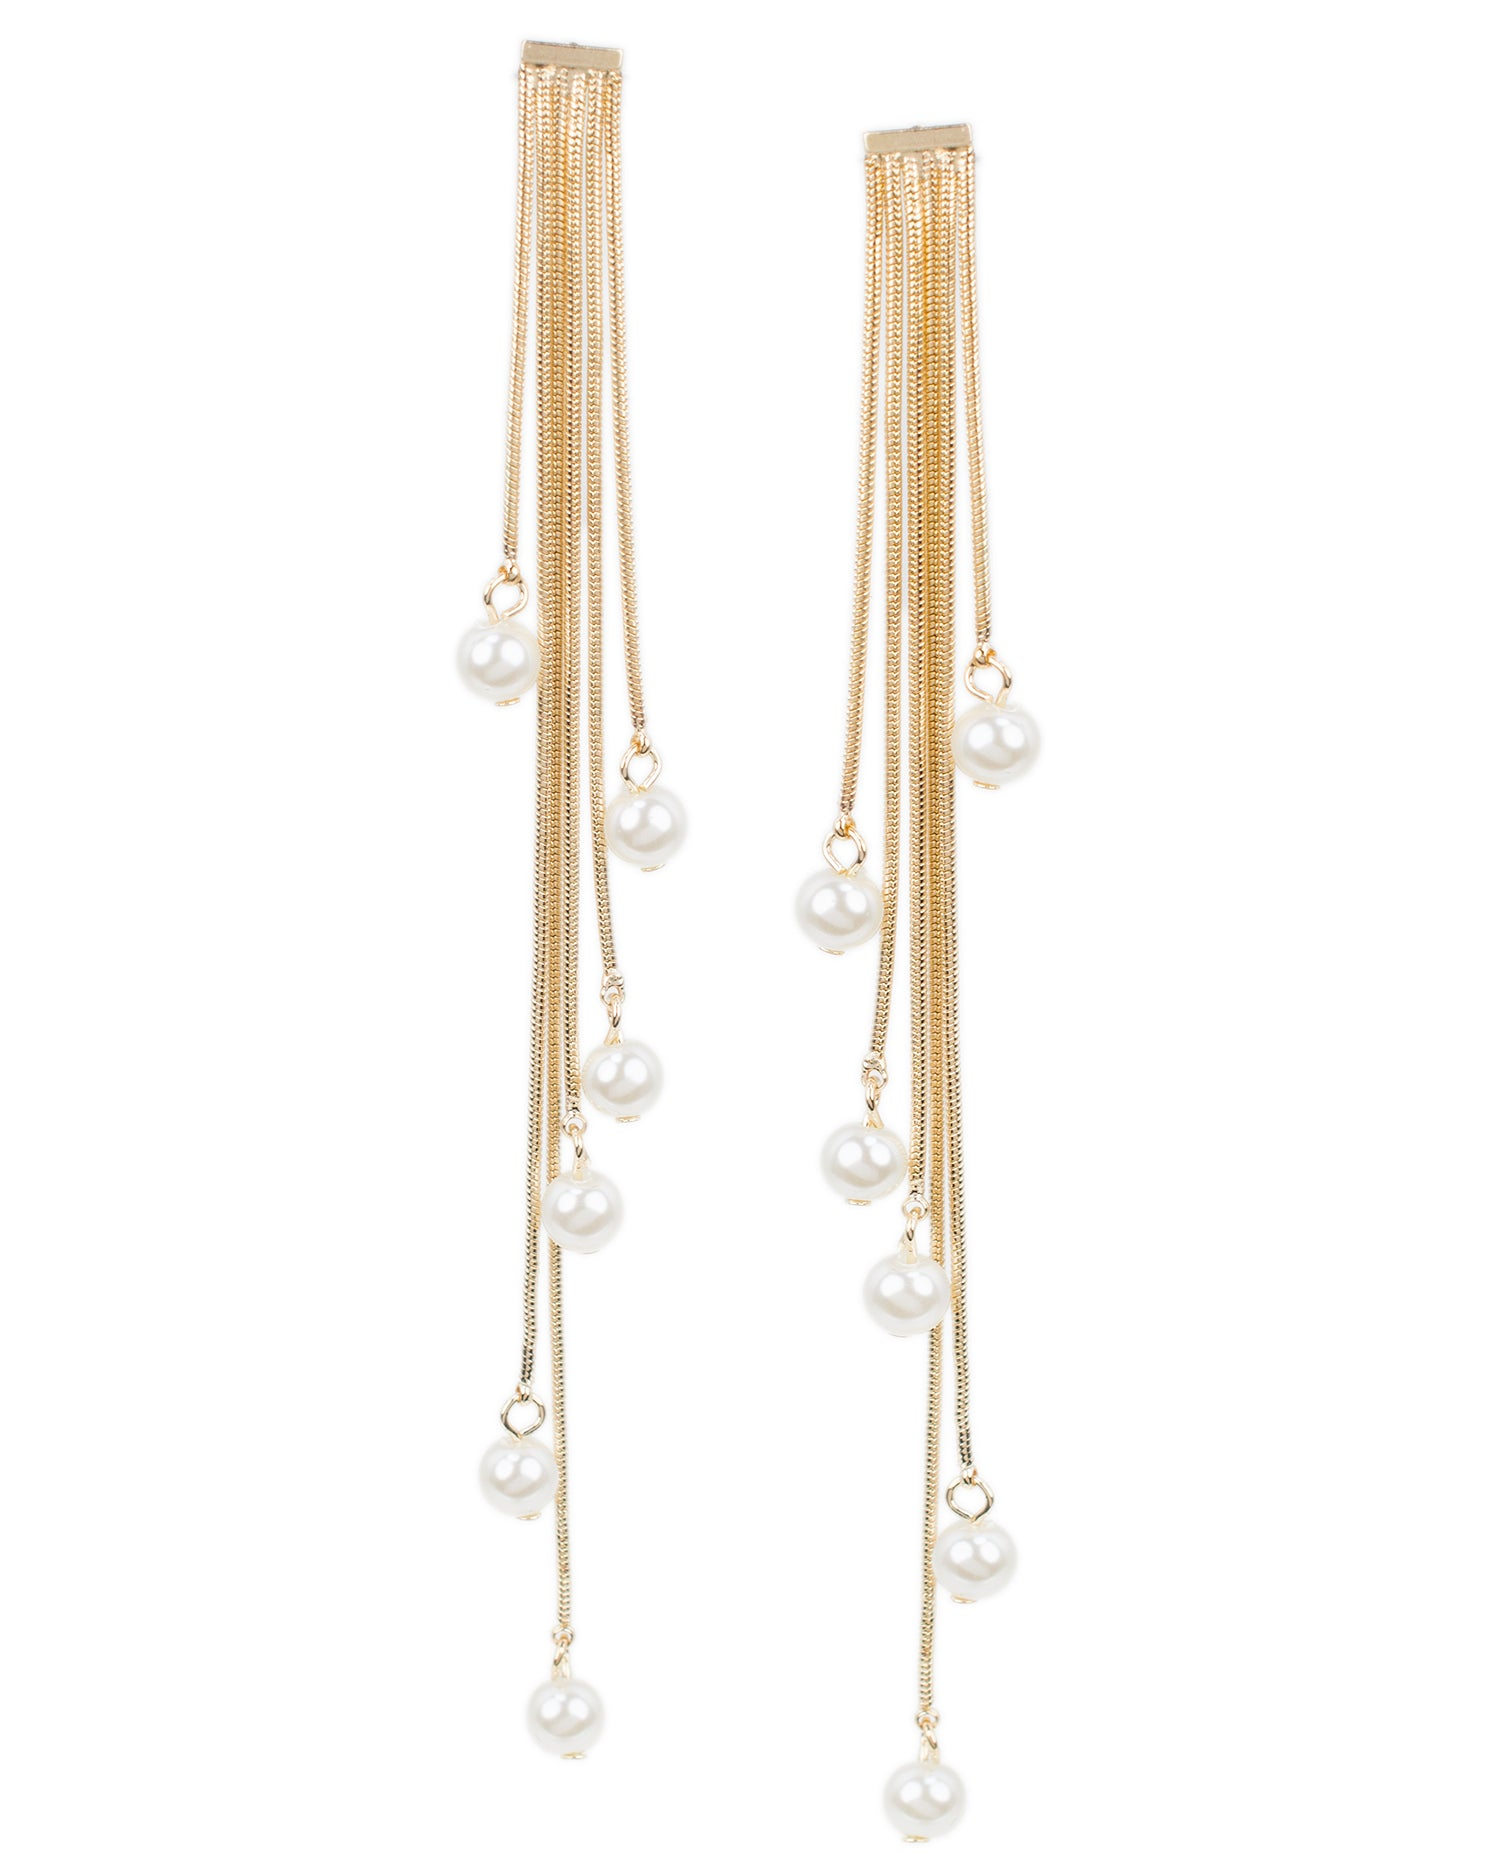 Pearl Shoulder Duster Earrings